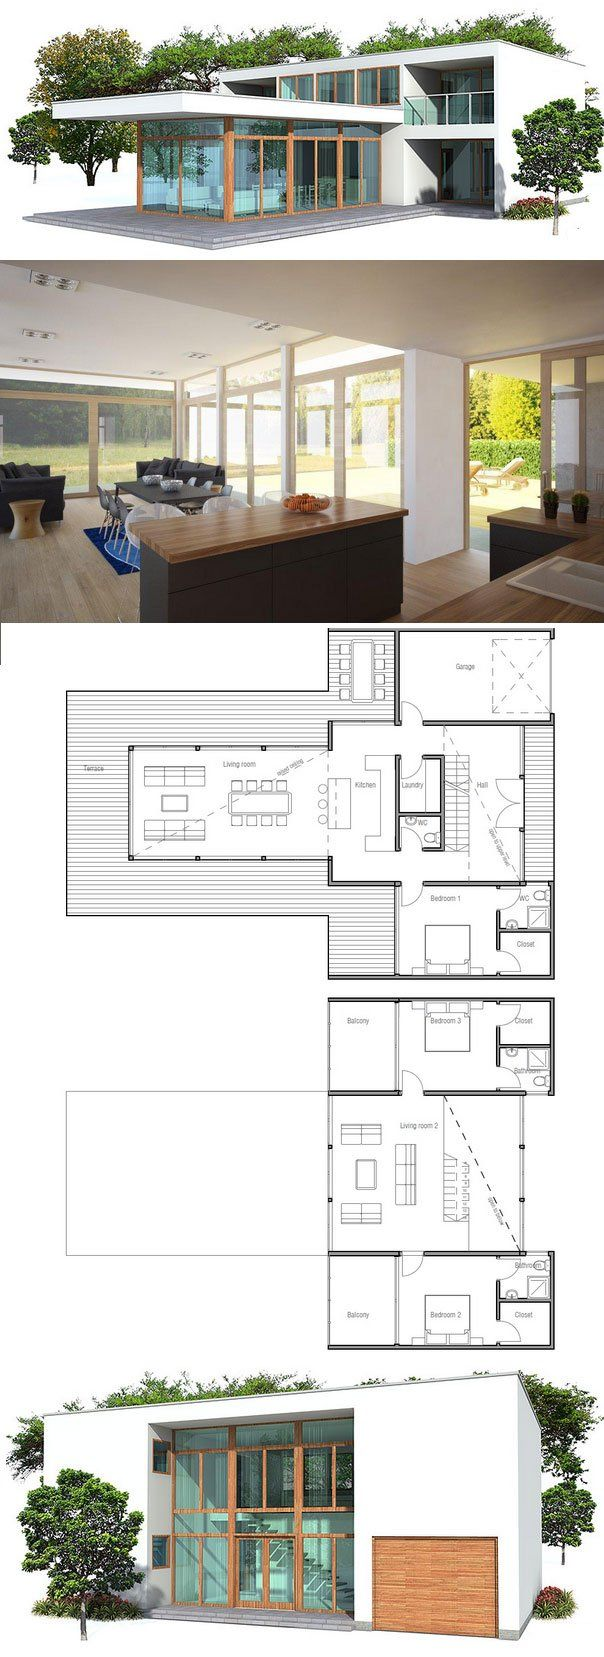 modern house plan floor plan from house. Black Bedroom Furniture Sets. Home Design Ideas